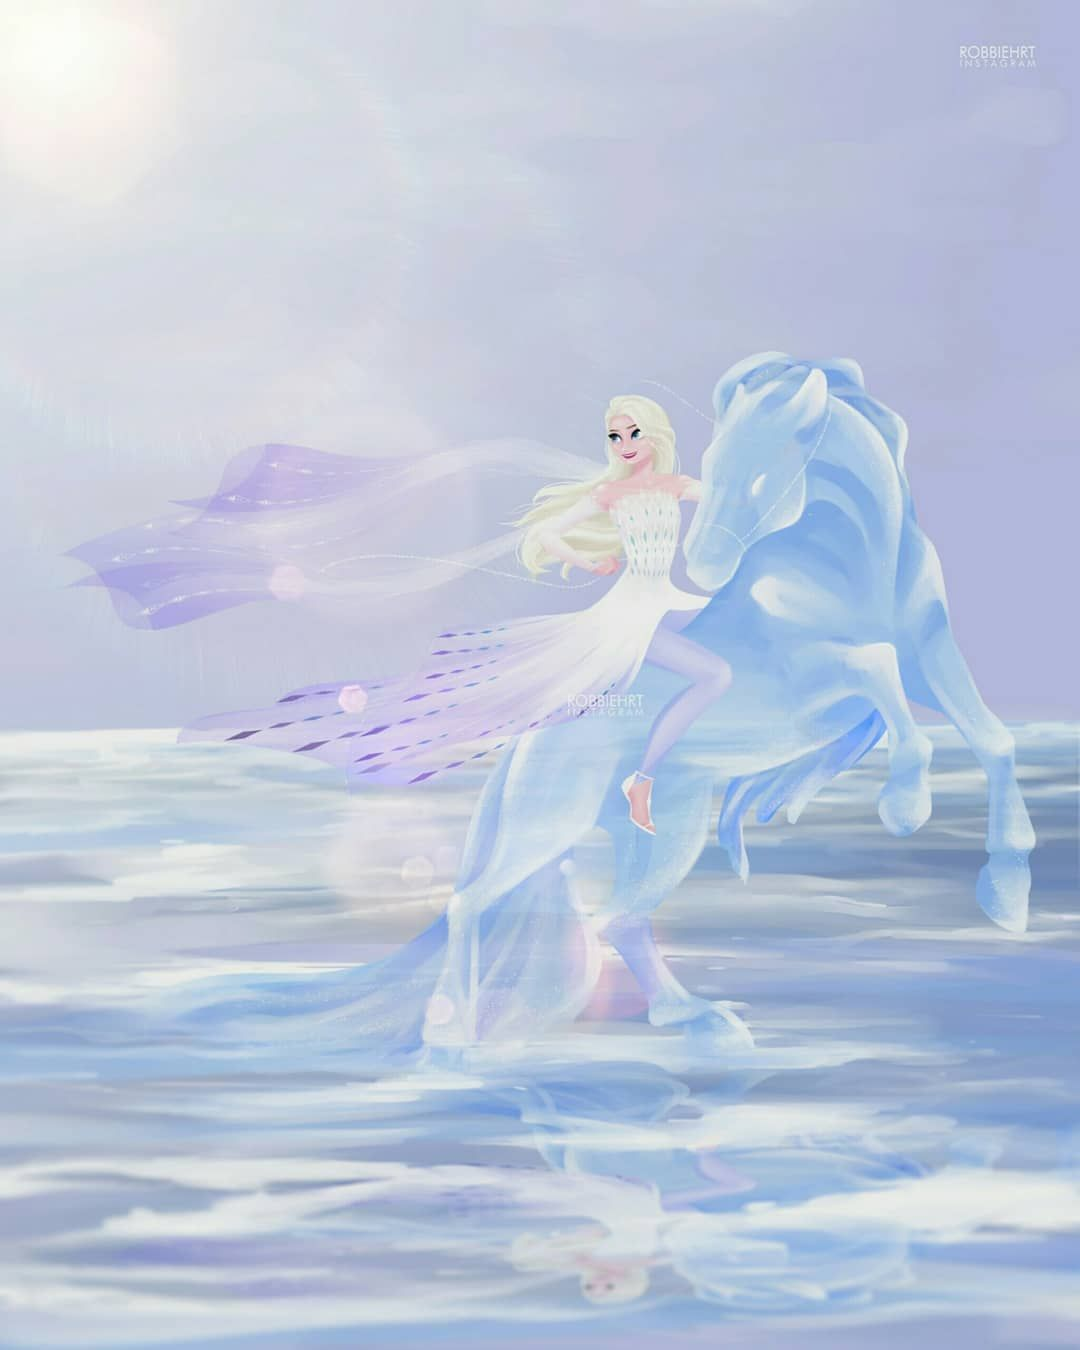 Robbie Hardianto On Instagram Elsa Rides A Nokk Frozen2 Disneyfrozen Dis Disney Princess Drawings Disney Princess Wallpaper Frozen Disney Movie